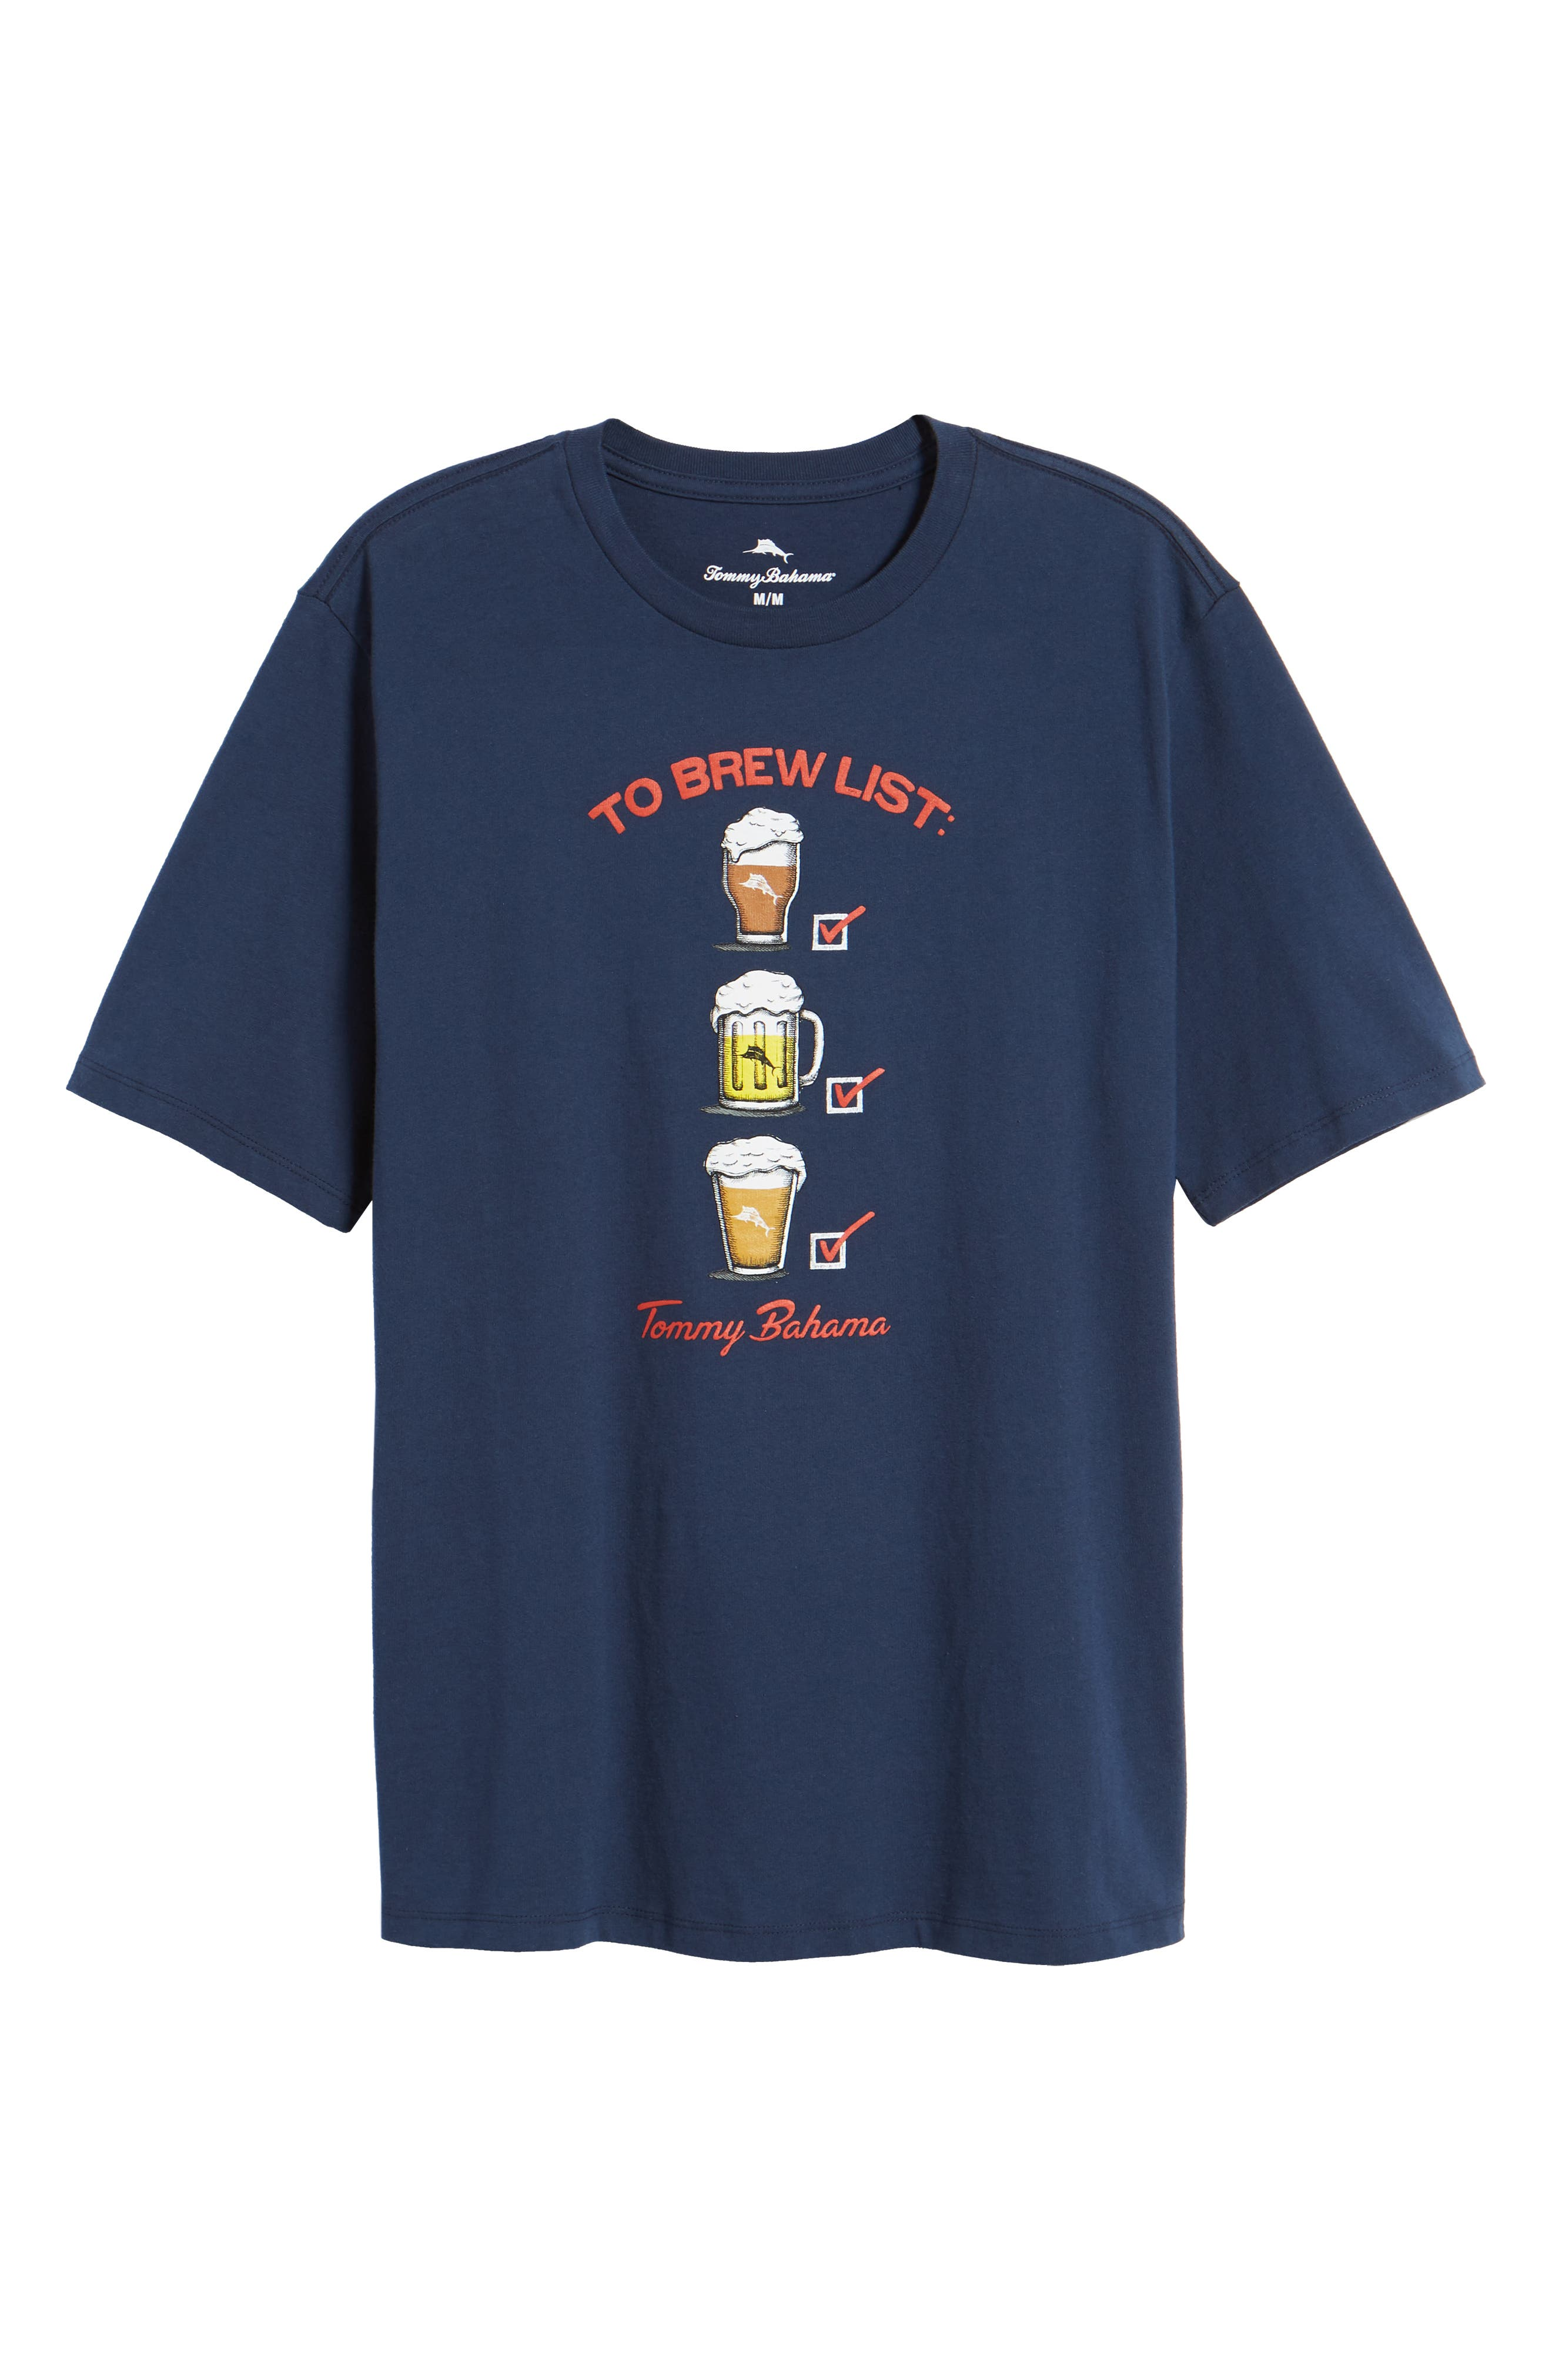 To Brew List T-Shirt,                             Alternate thumbnail 6, color,                             400